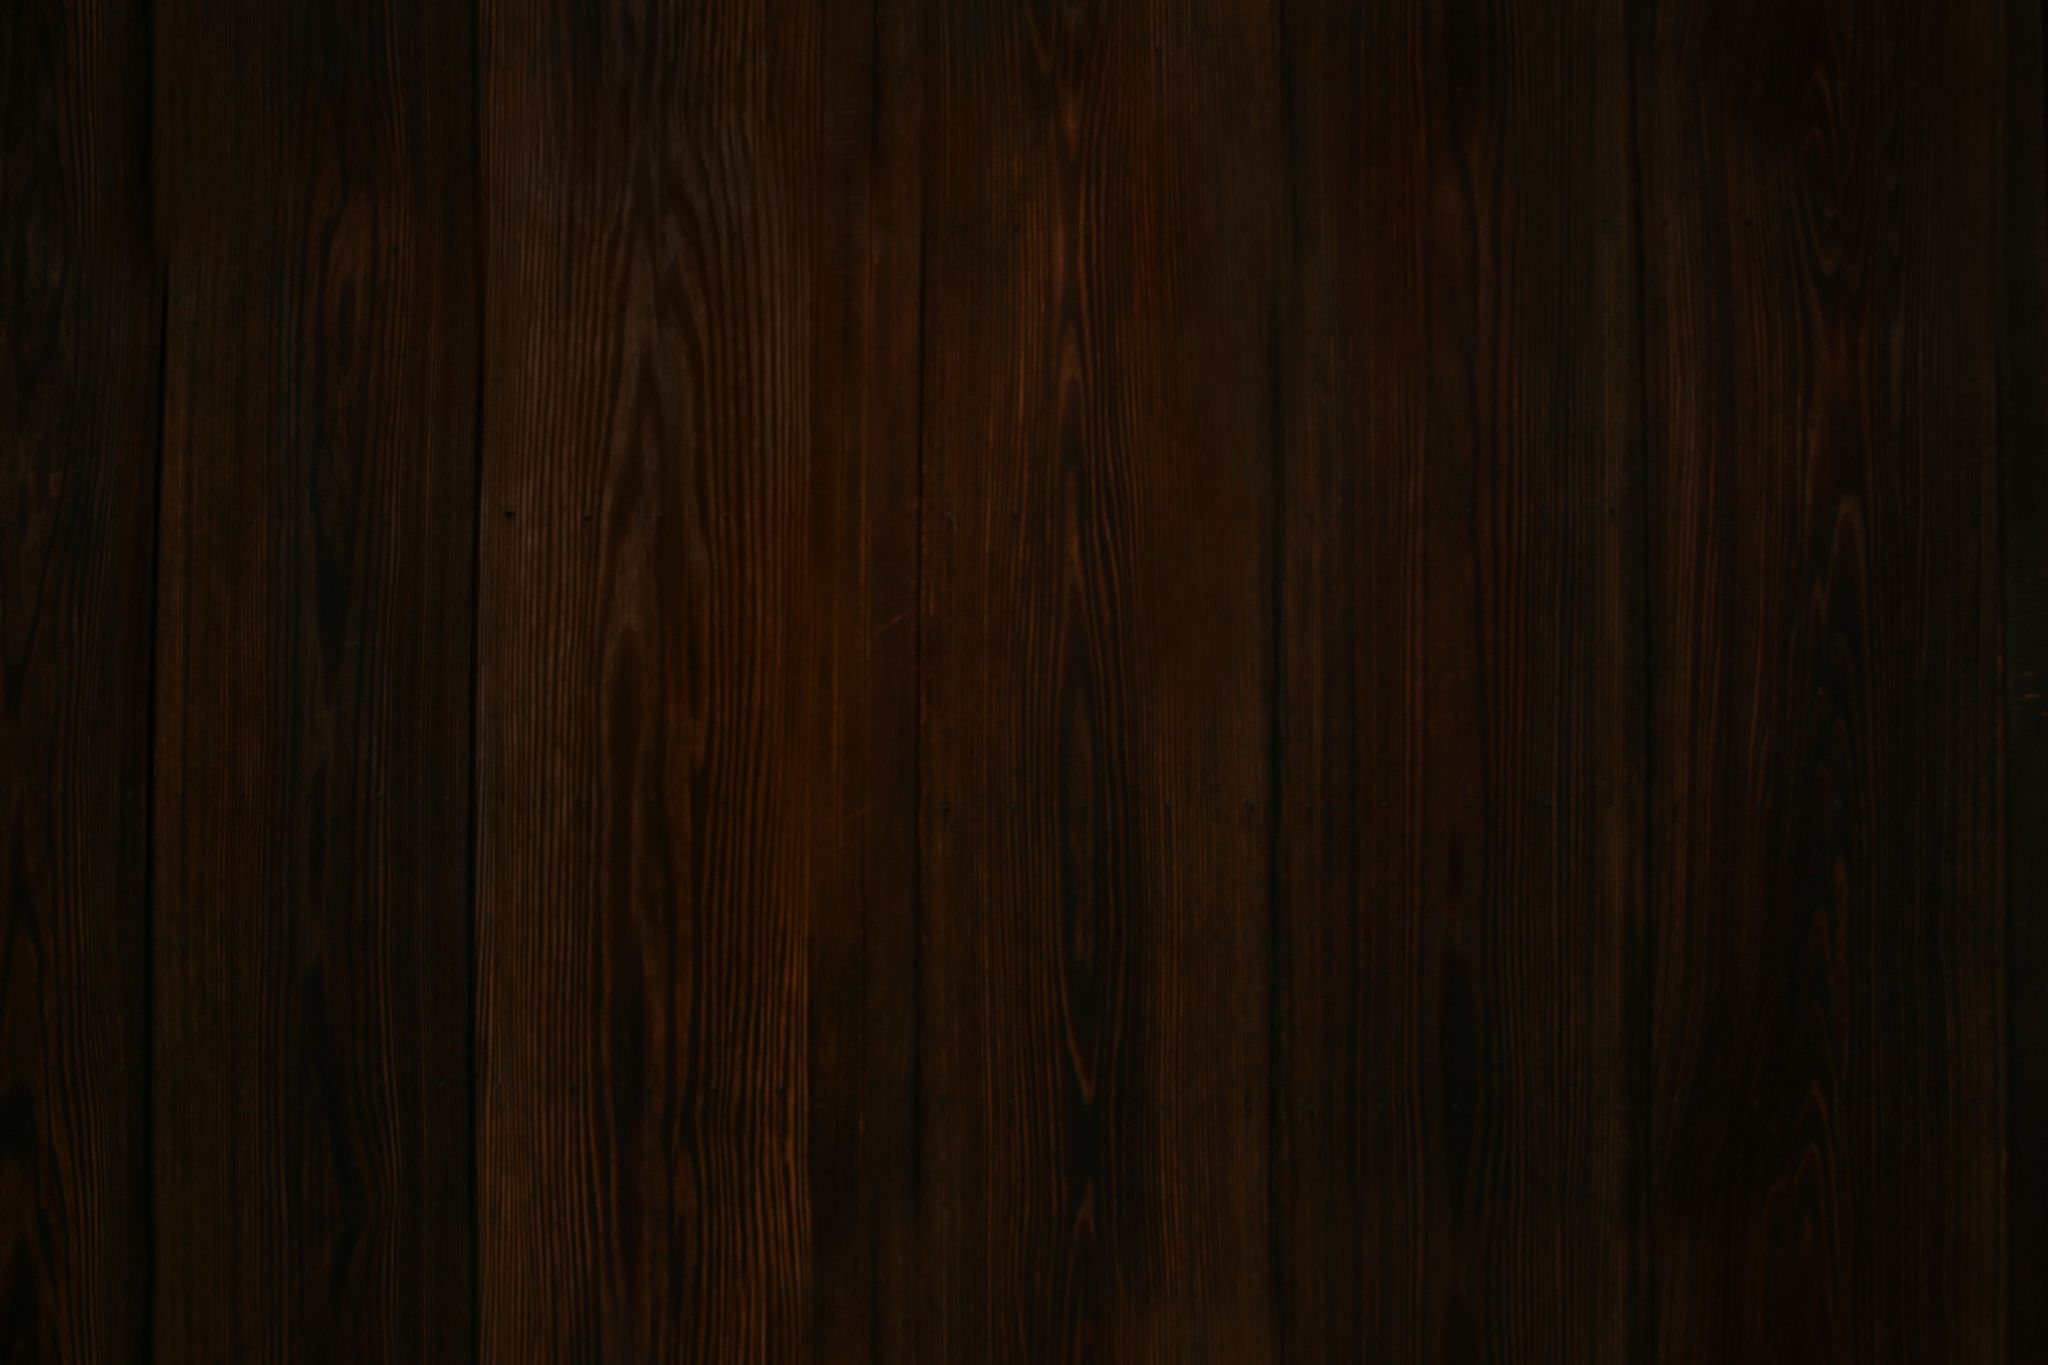 DarkBrown S 1414 Kb 148 Downloads Texture Pack More Wood Panels